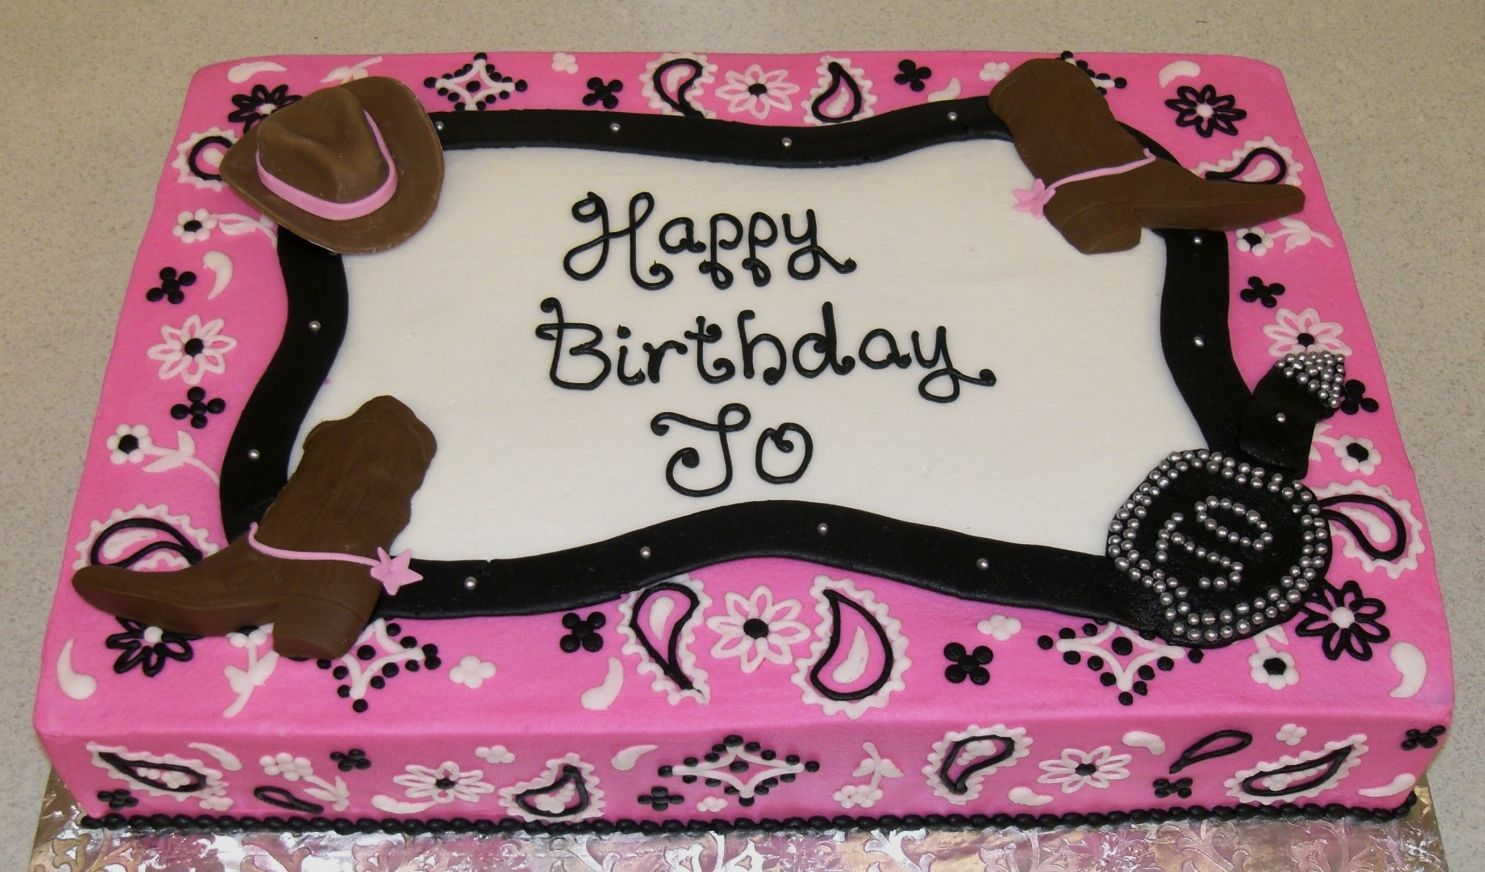 Outstanding Western Pink Bandana Jpg 1 485872 Pixels With Images Cowgirl Funny Birthday Cards Online Chimdamsfinfo